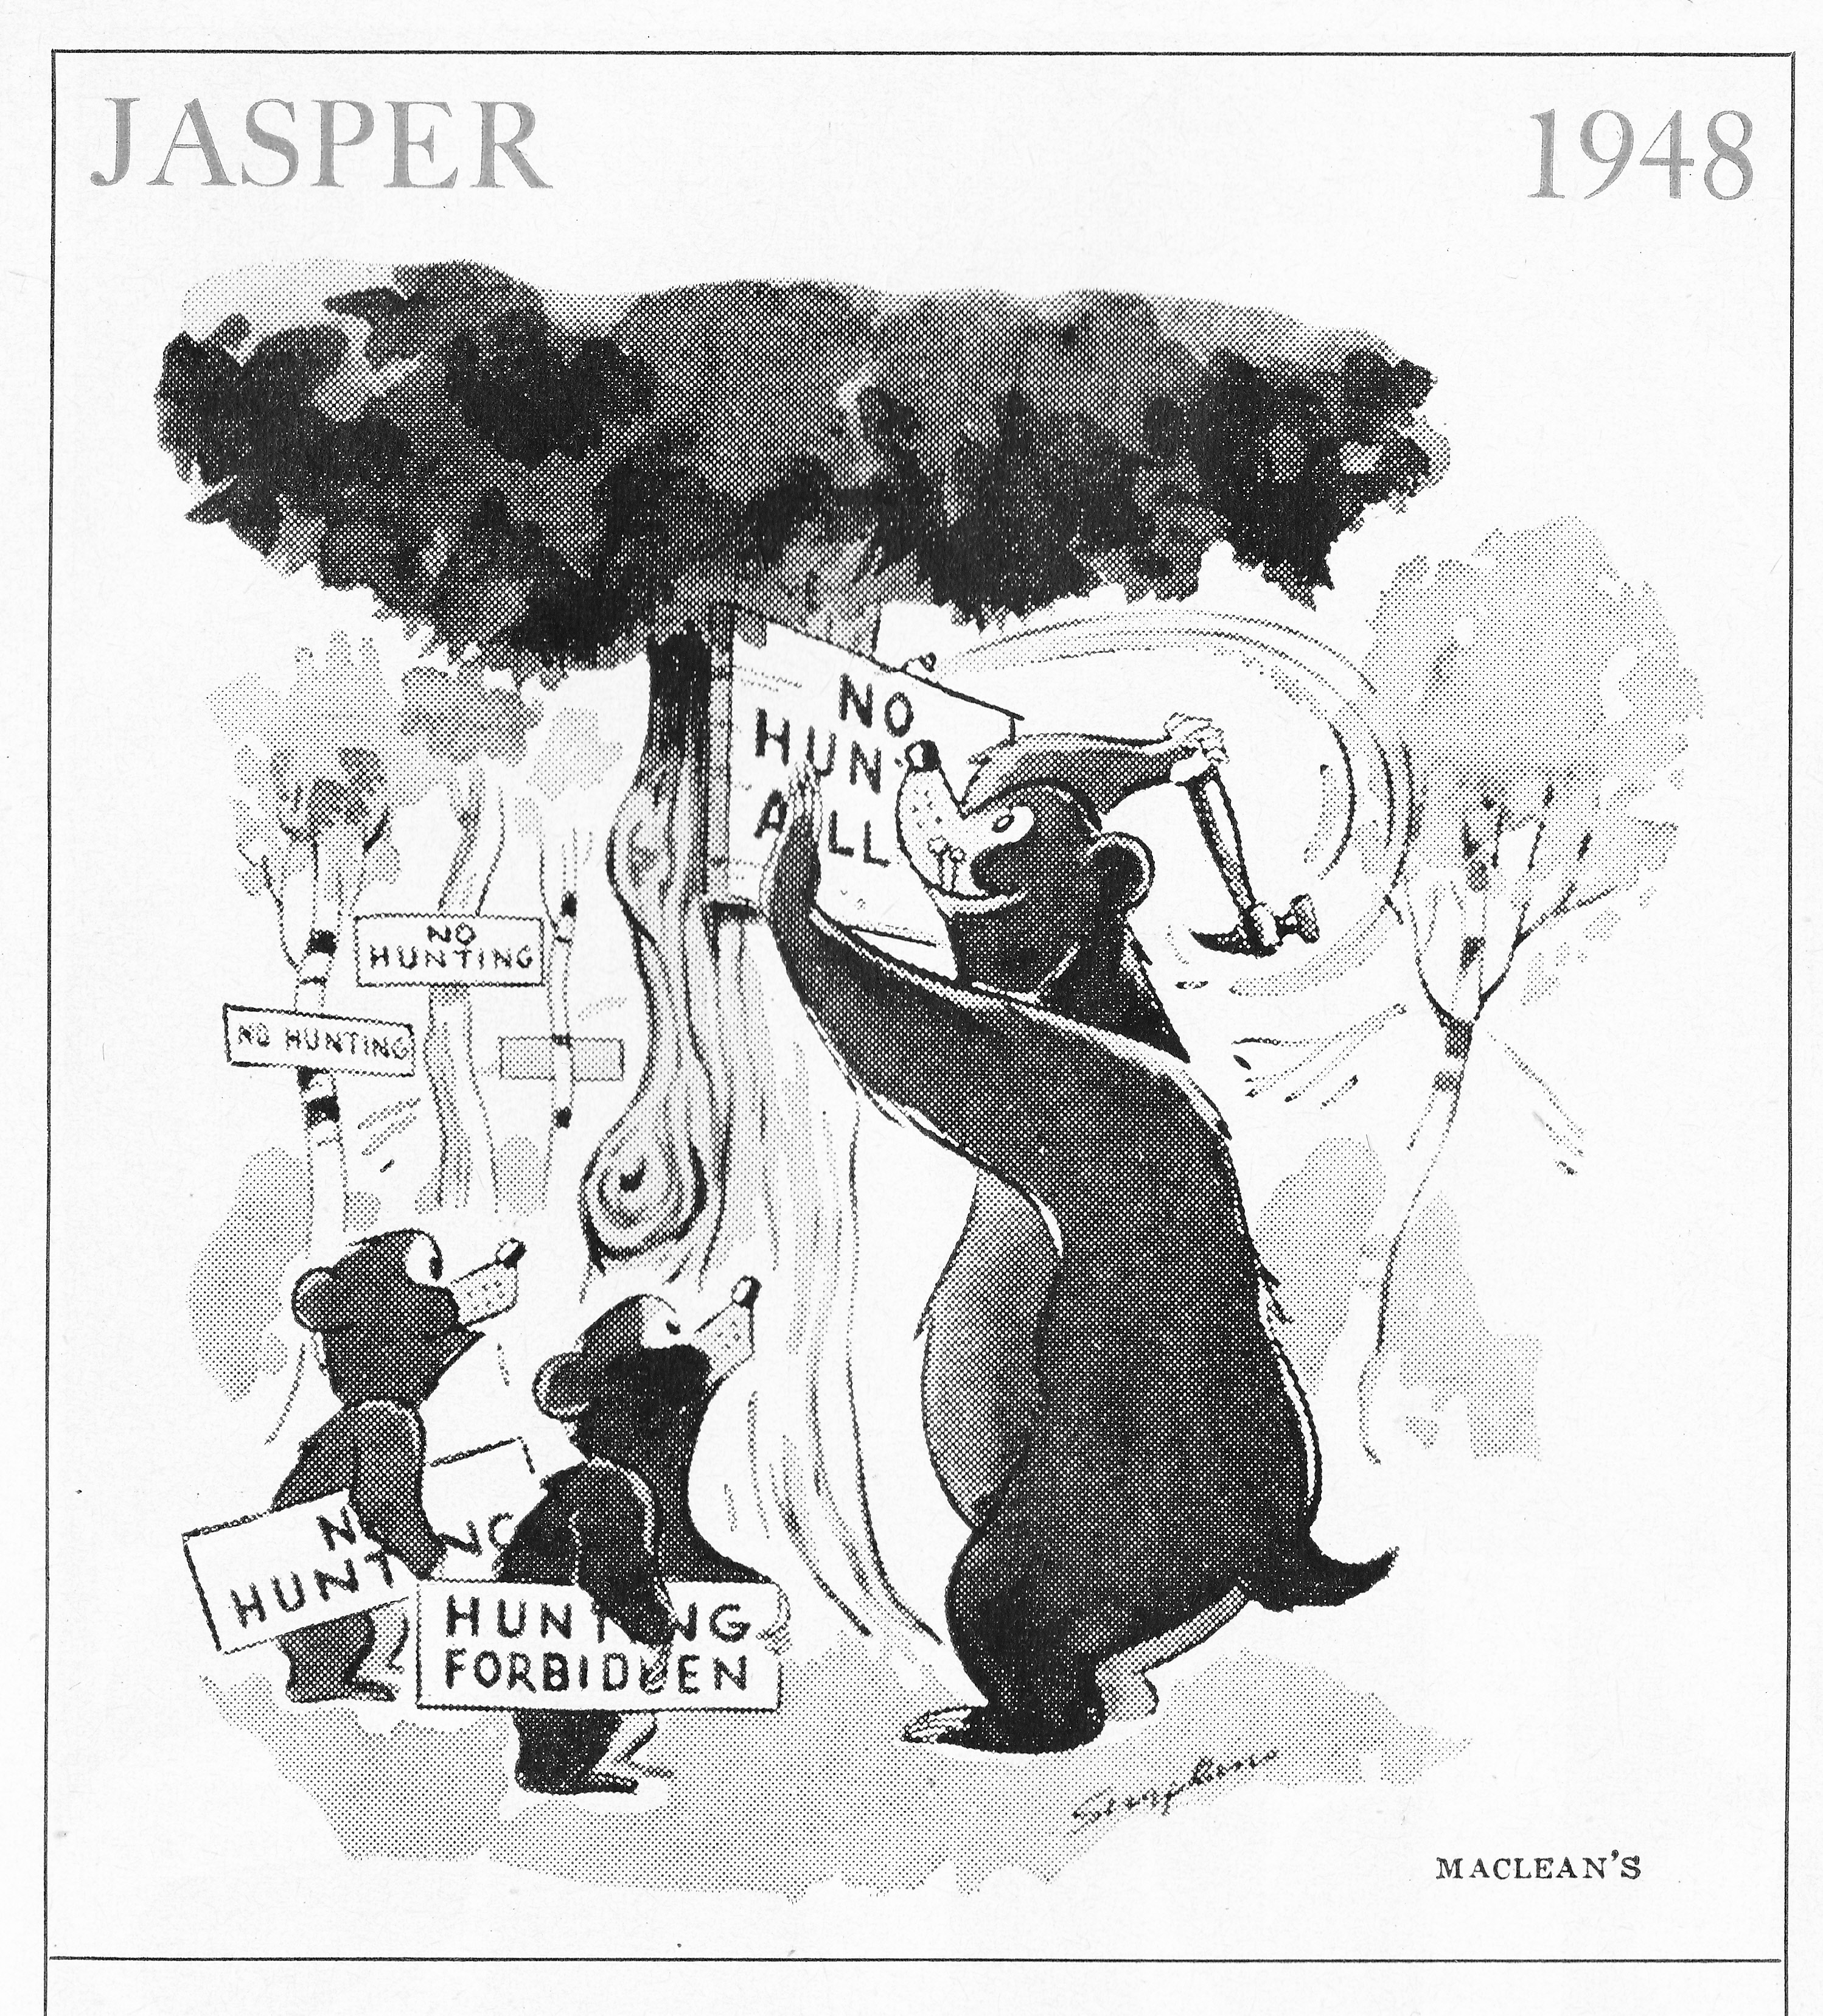 C:\Users\Robert\Documents\CANADIAN CARTOONING ILLUSTRATION and ANIMATION\IMAGE CARTOON J\JASPER THE BEAR, Maclean's 6 July 1963, 51.jpg